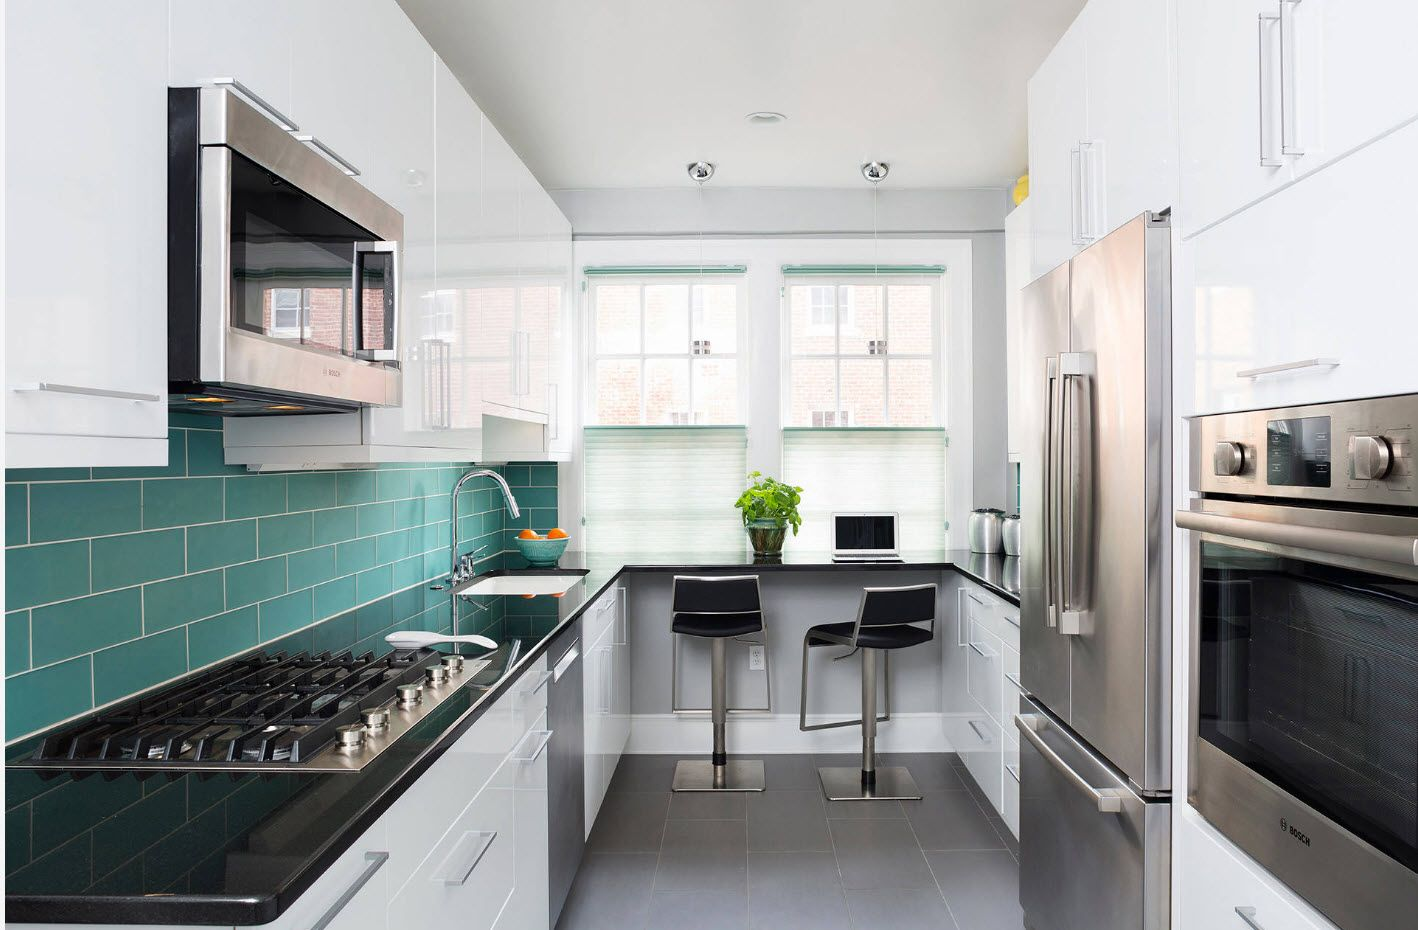 Galley kitchen with dining group and steel surfaces of appliances